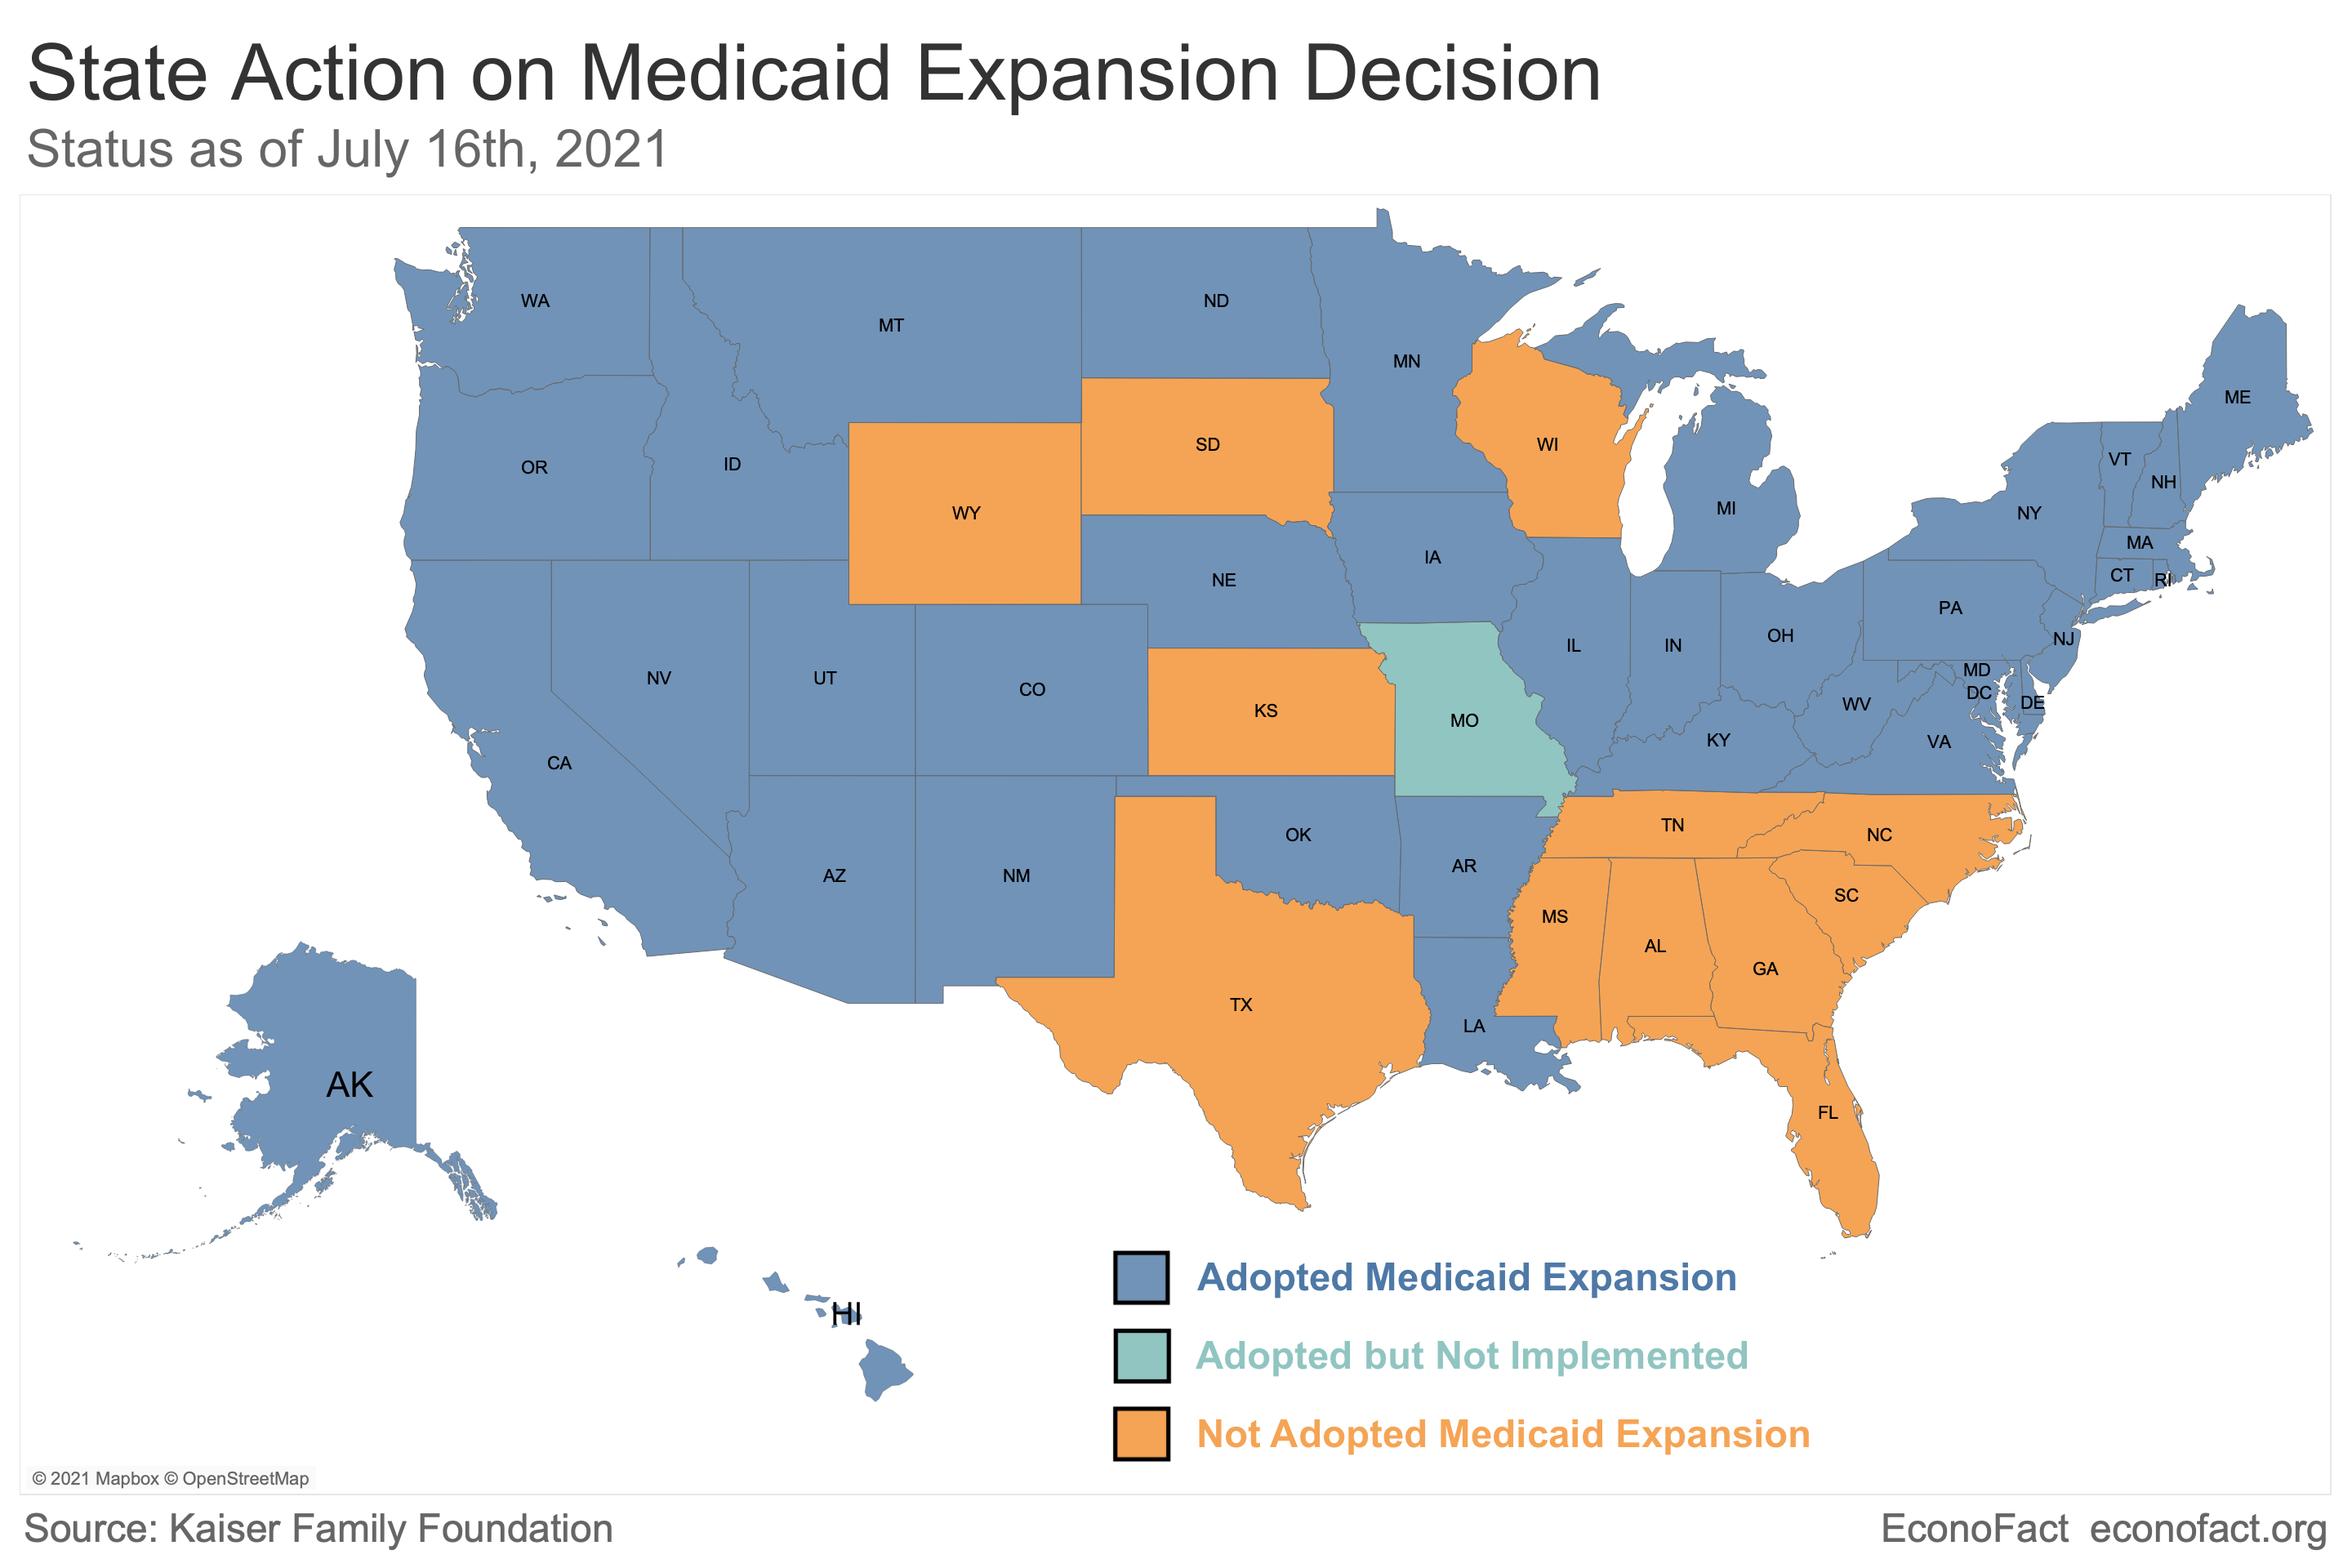 Impact of Medicaid Expansion on State Budgets and Mortality